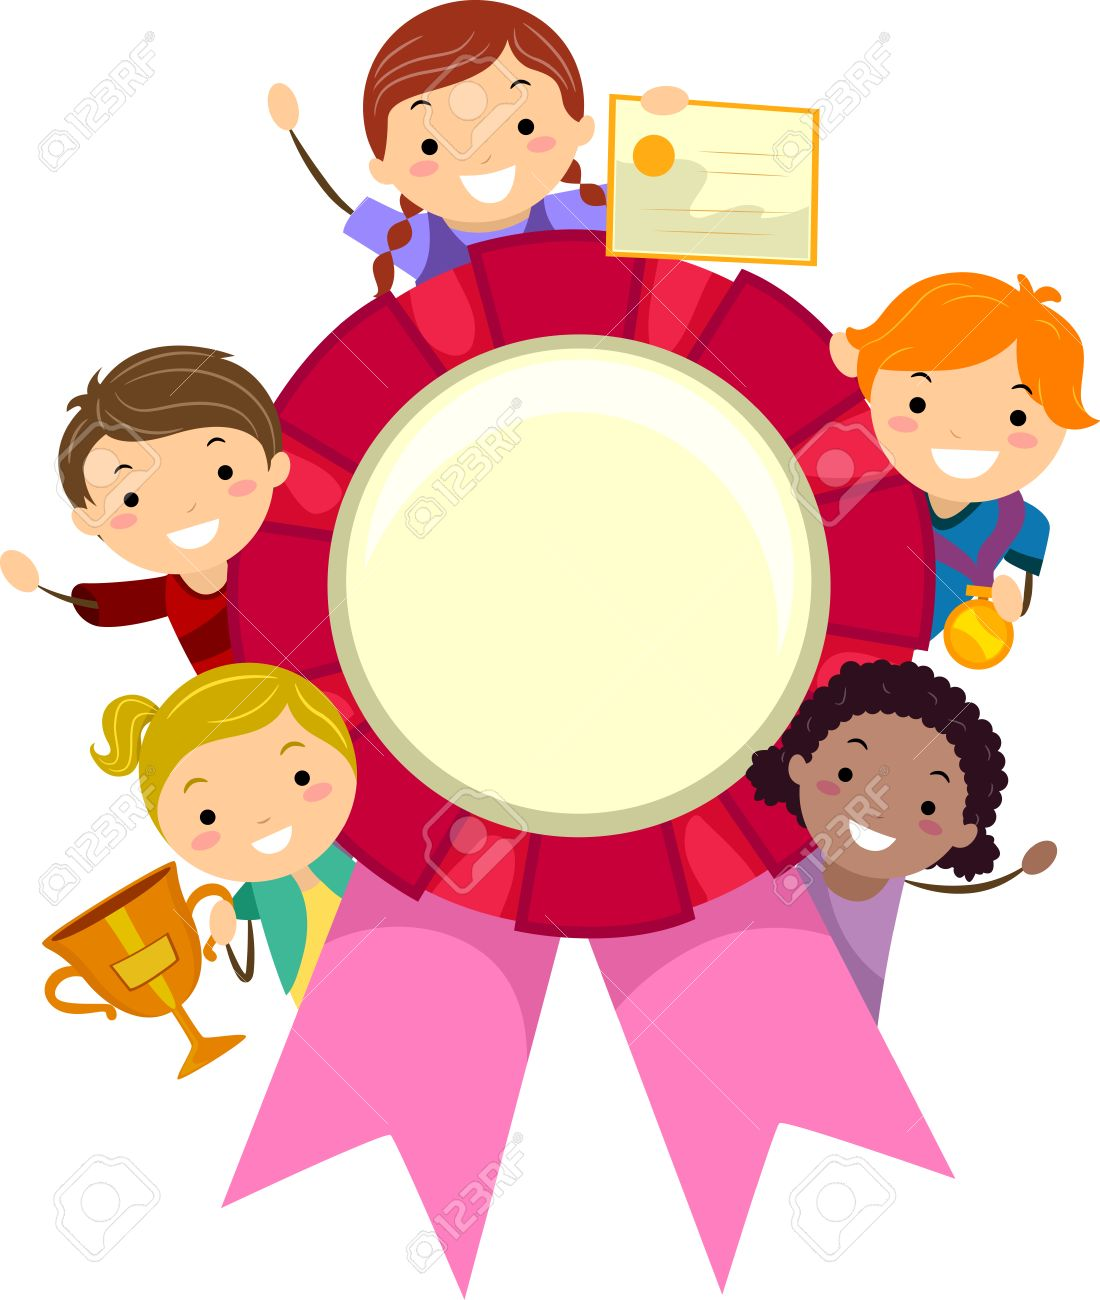 stickman illustration of kids holding different awards stock photo rh 123rf com awards clip art images award clipart